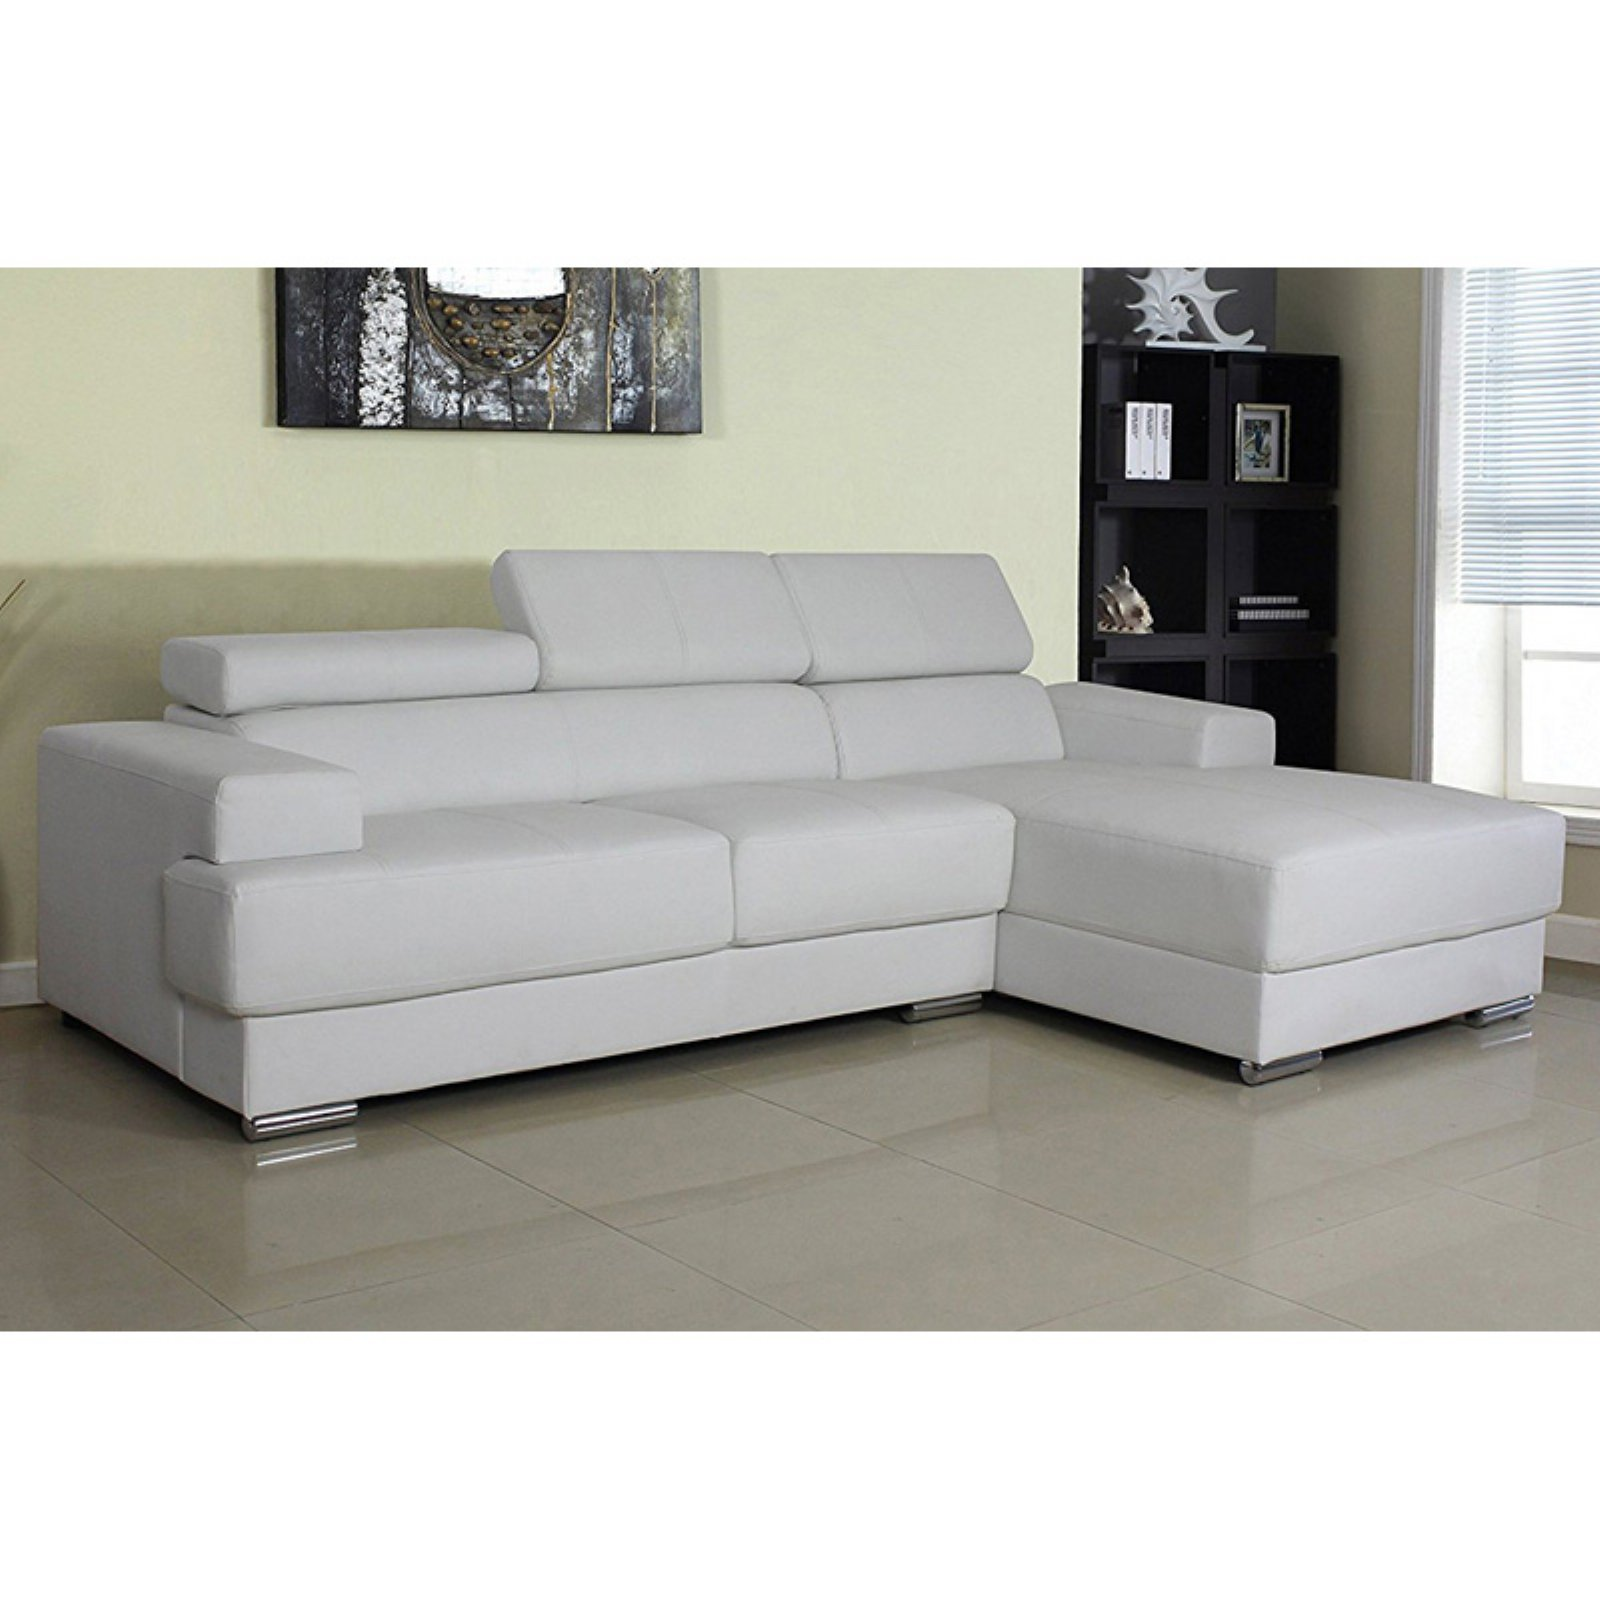 U.S. Pride Furniture Direct Gabriel Modern Sectional Sofa